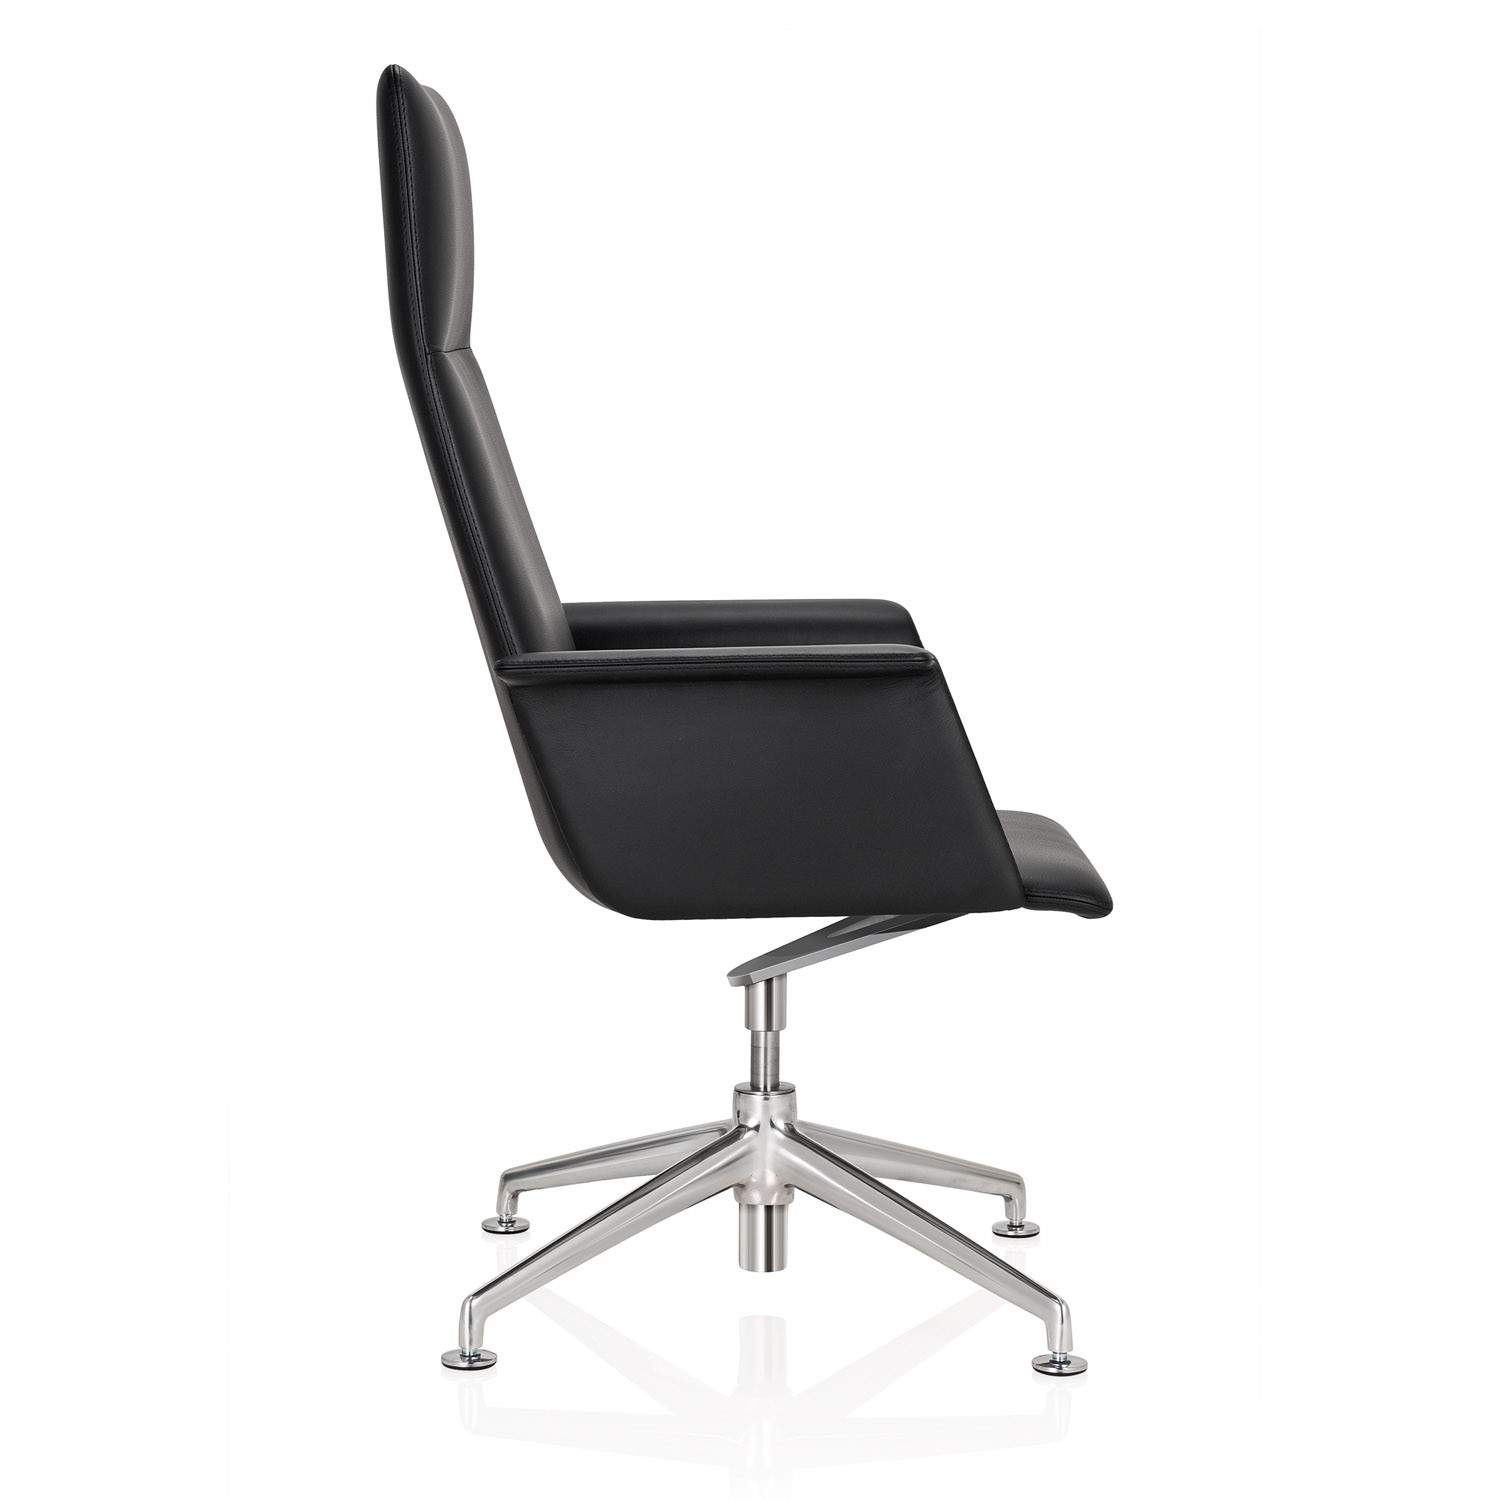 FinaSoft Conference Chair with Fully-Upholstered Armrests